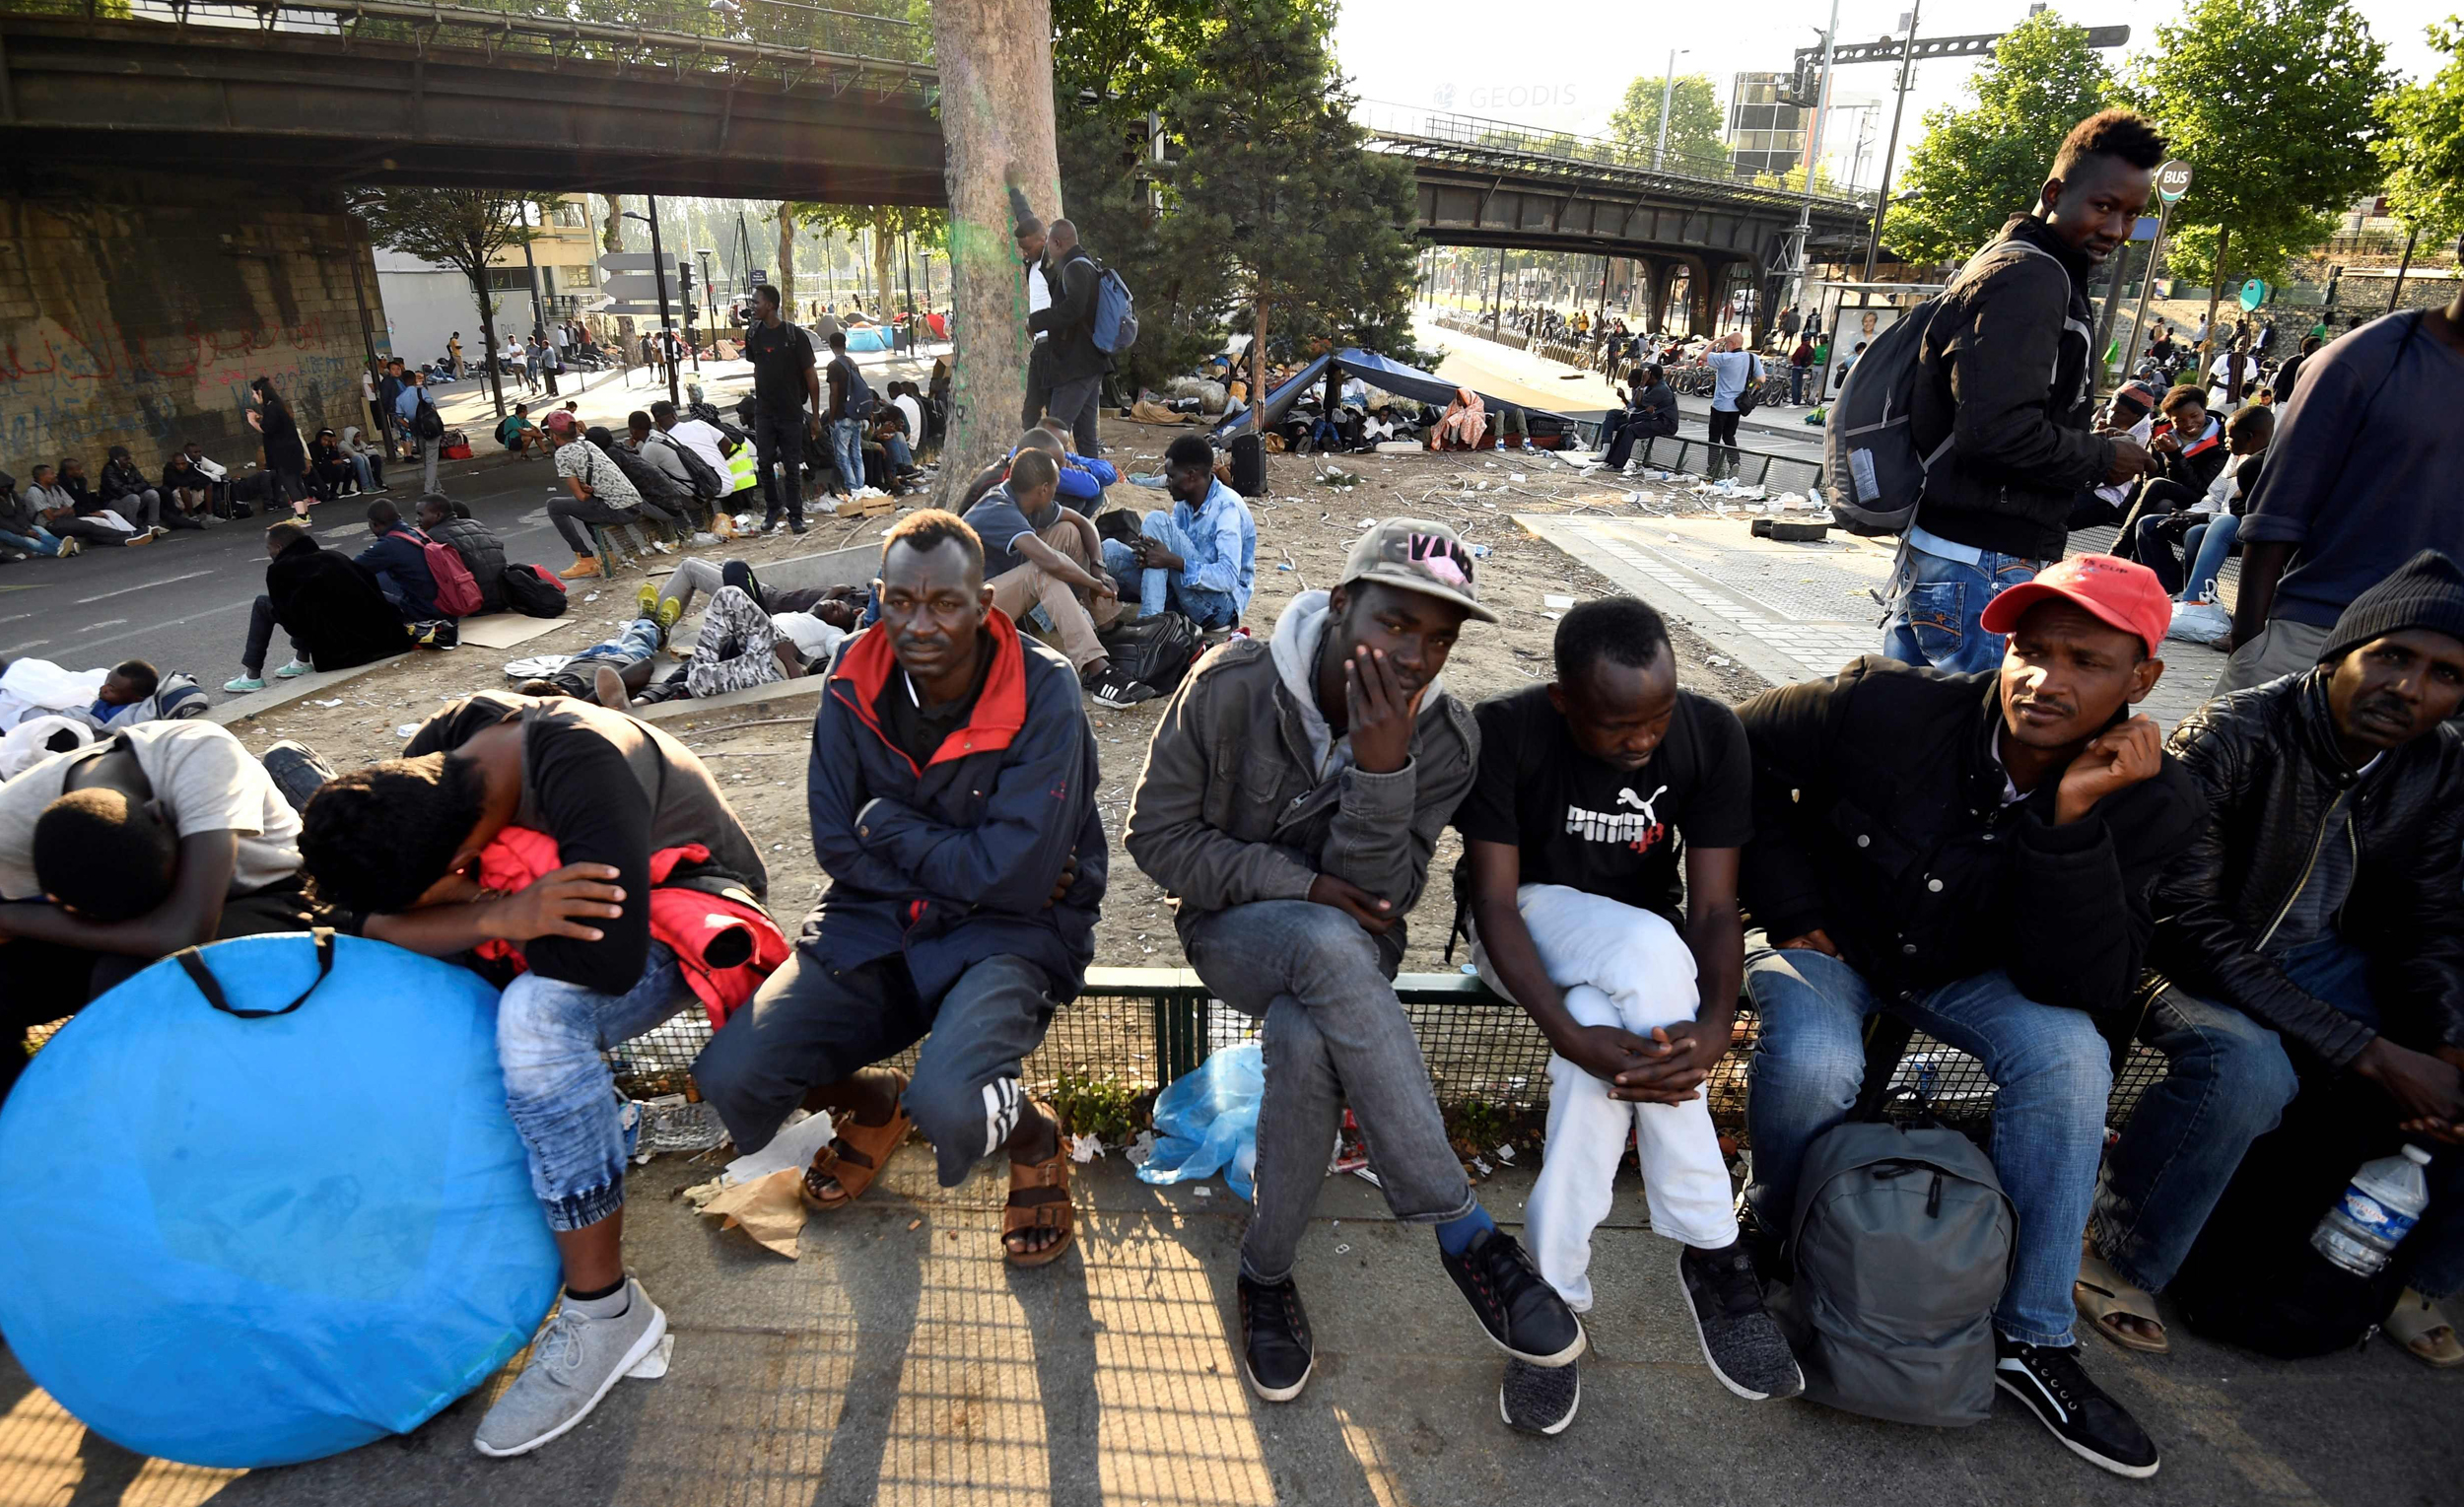 Thousands Evicted from Paris Migrant Camp - NBC News